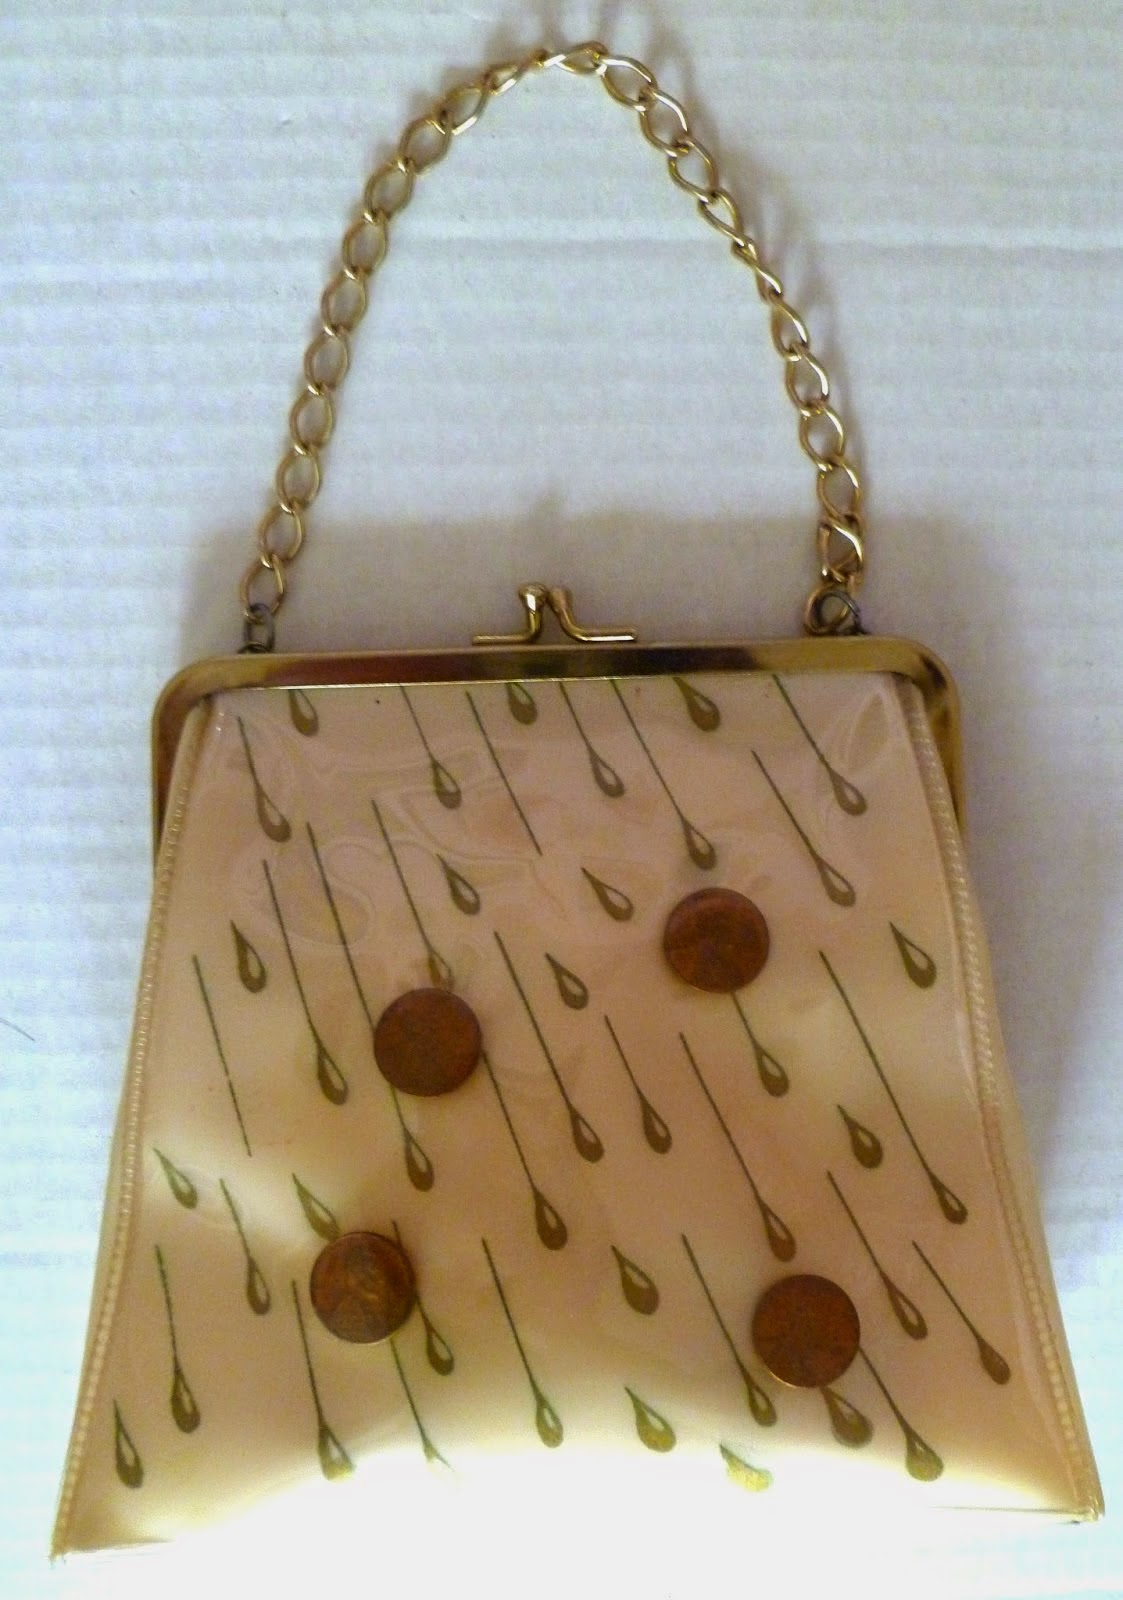 Raining pennies bag - Vintage Purse Gallery - Hello, Handbag